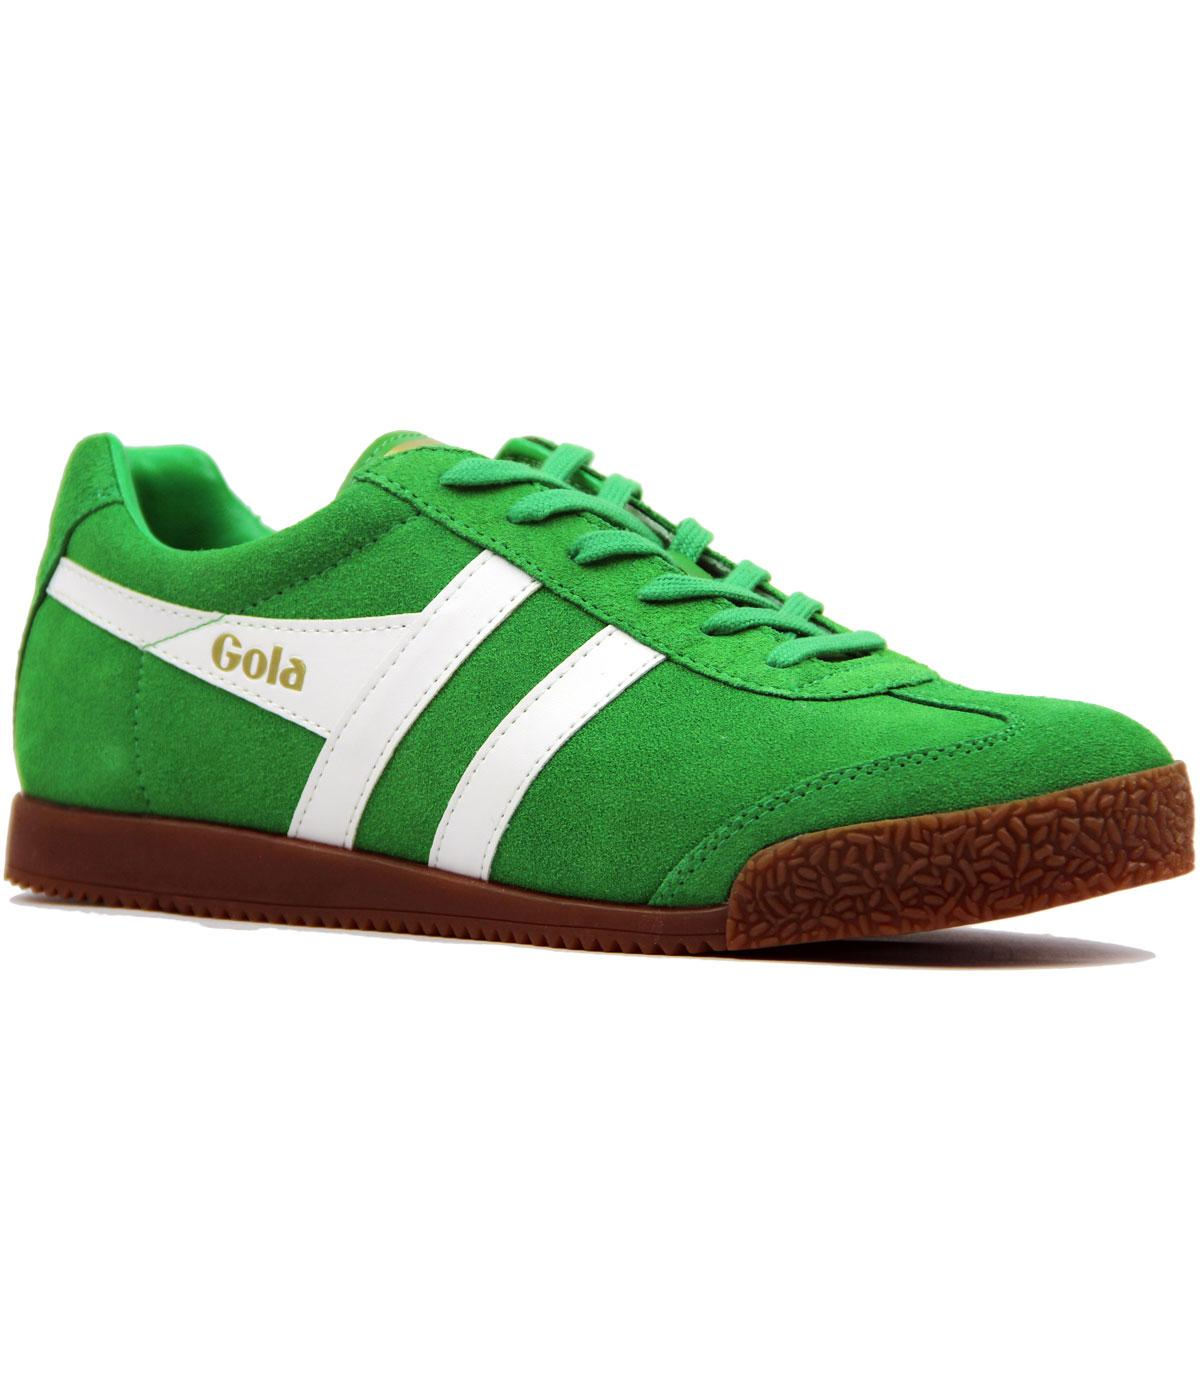 GOLA Harrier Premium Suede Retro Indie Trainers in Green 06e29dd09890